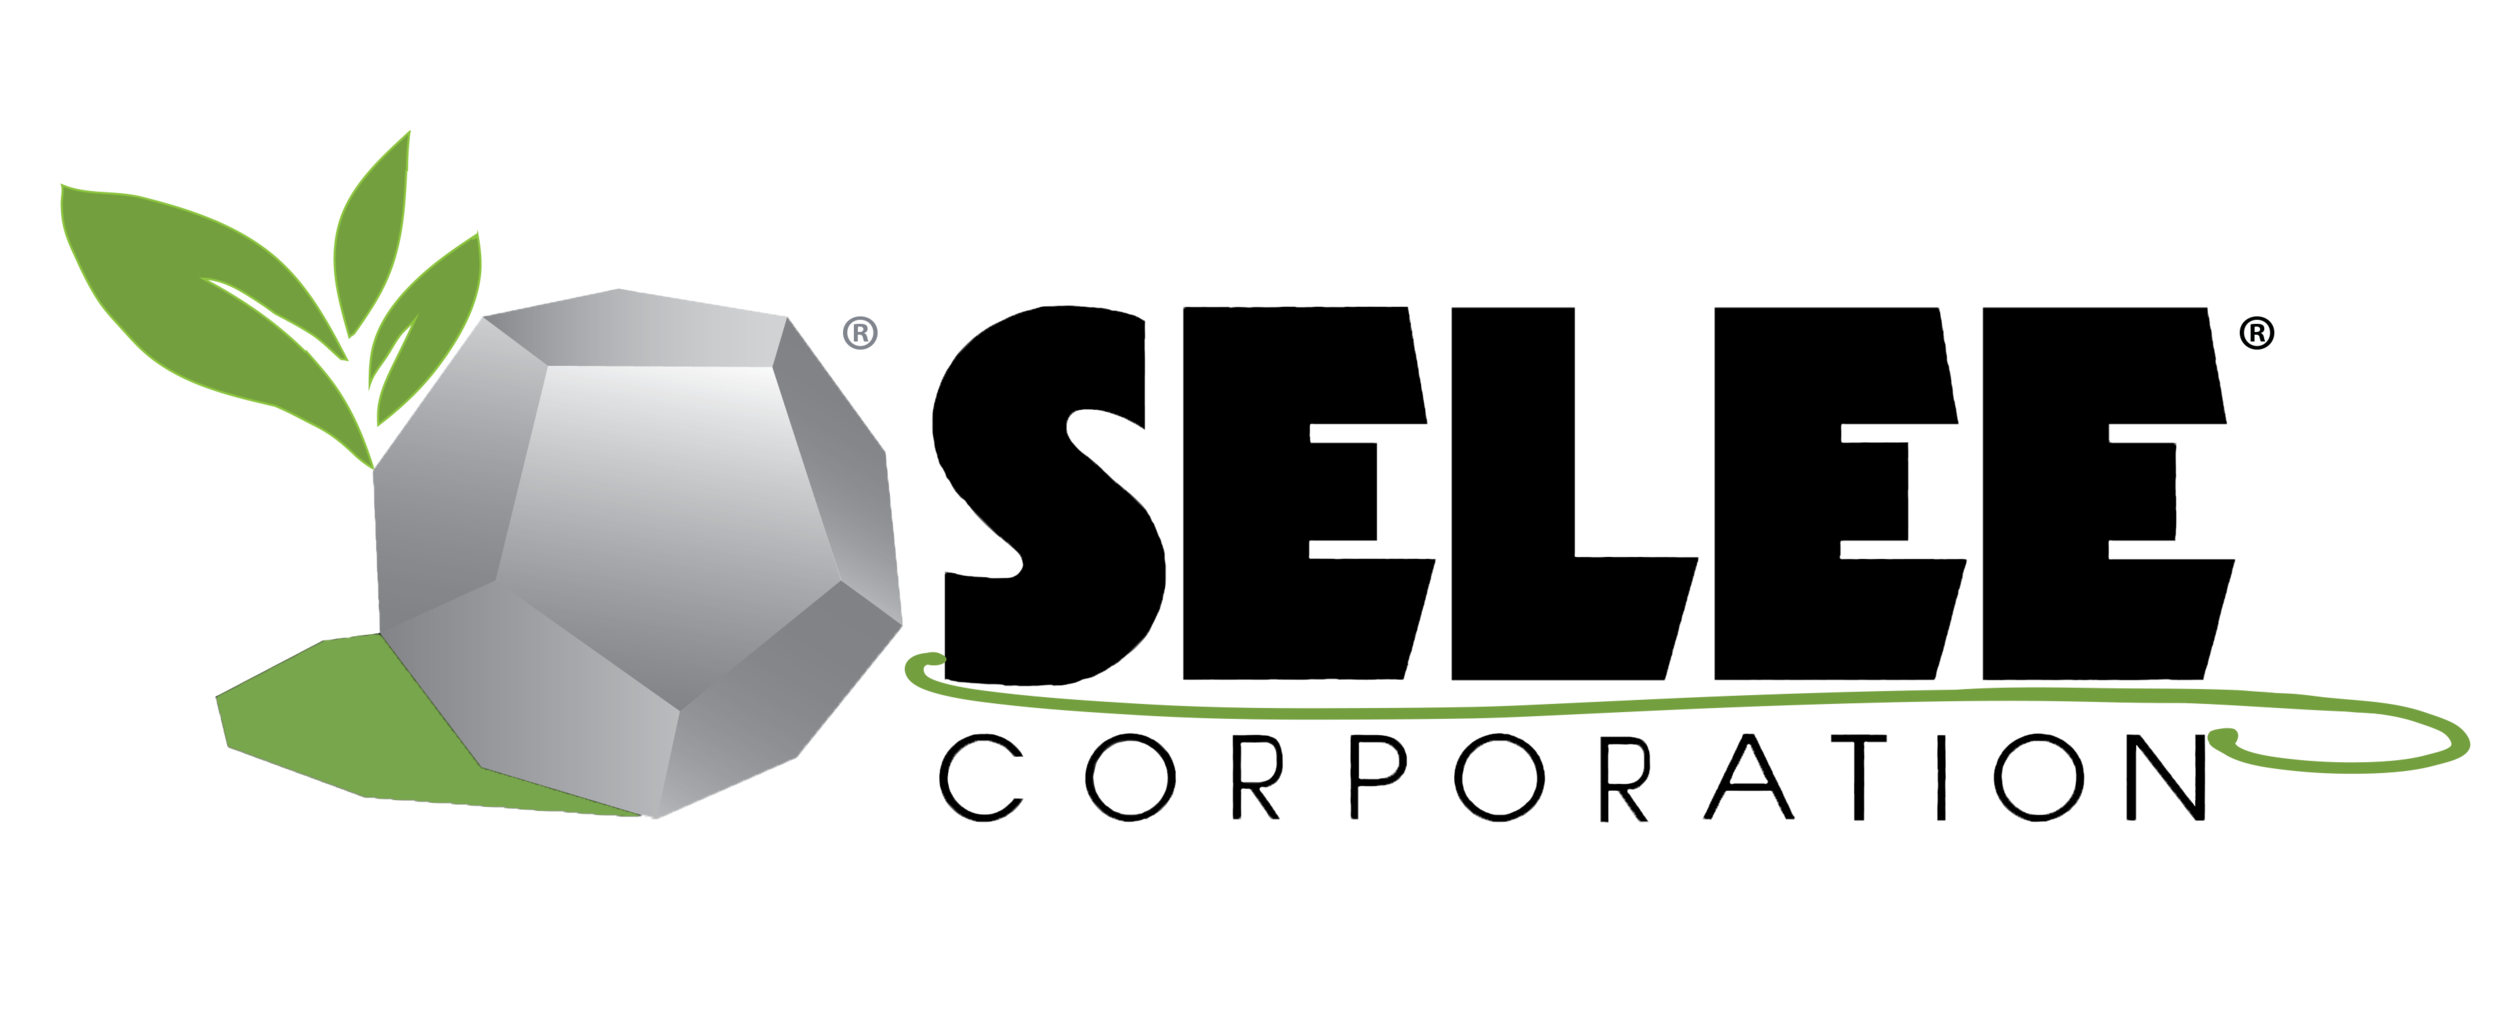 Selee Green Logo Final with ®.png